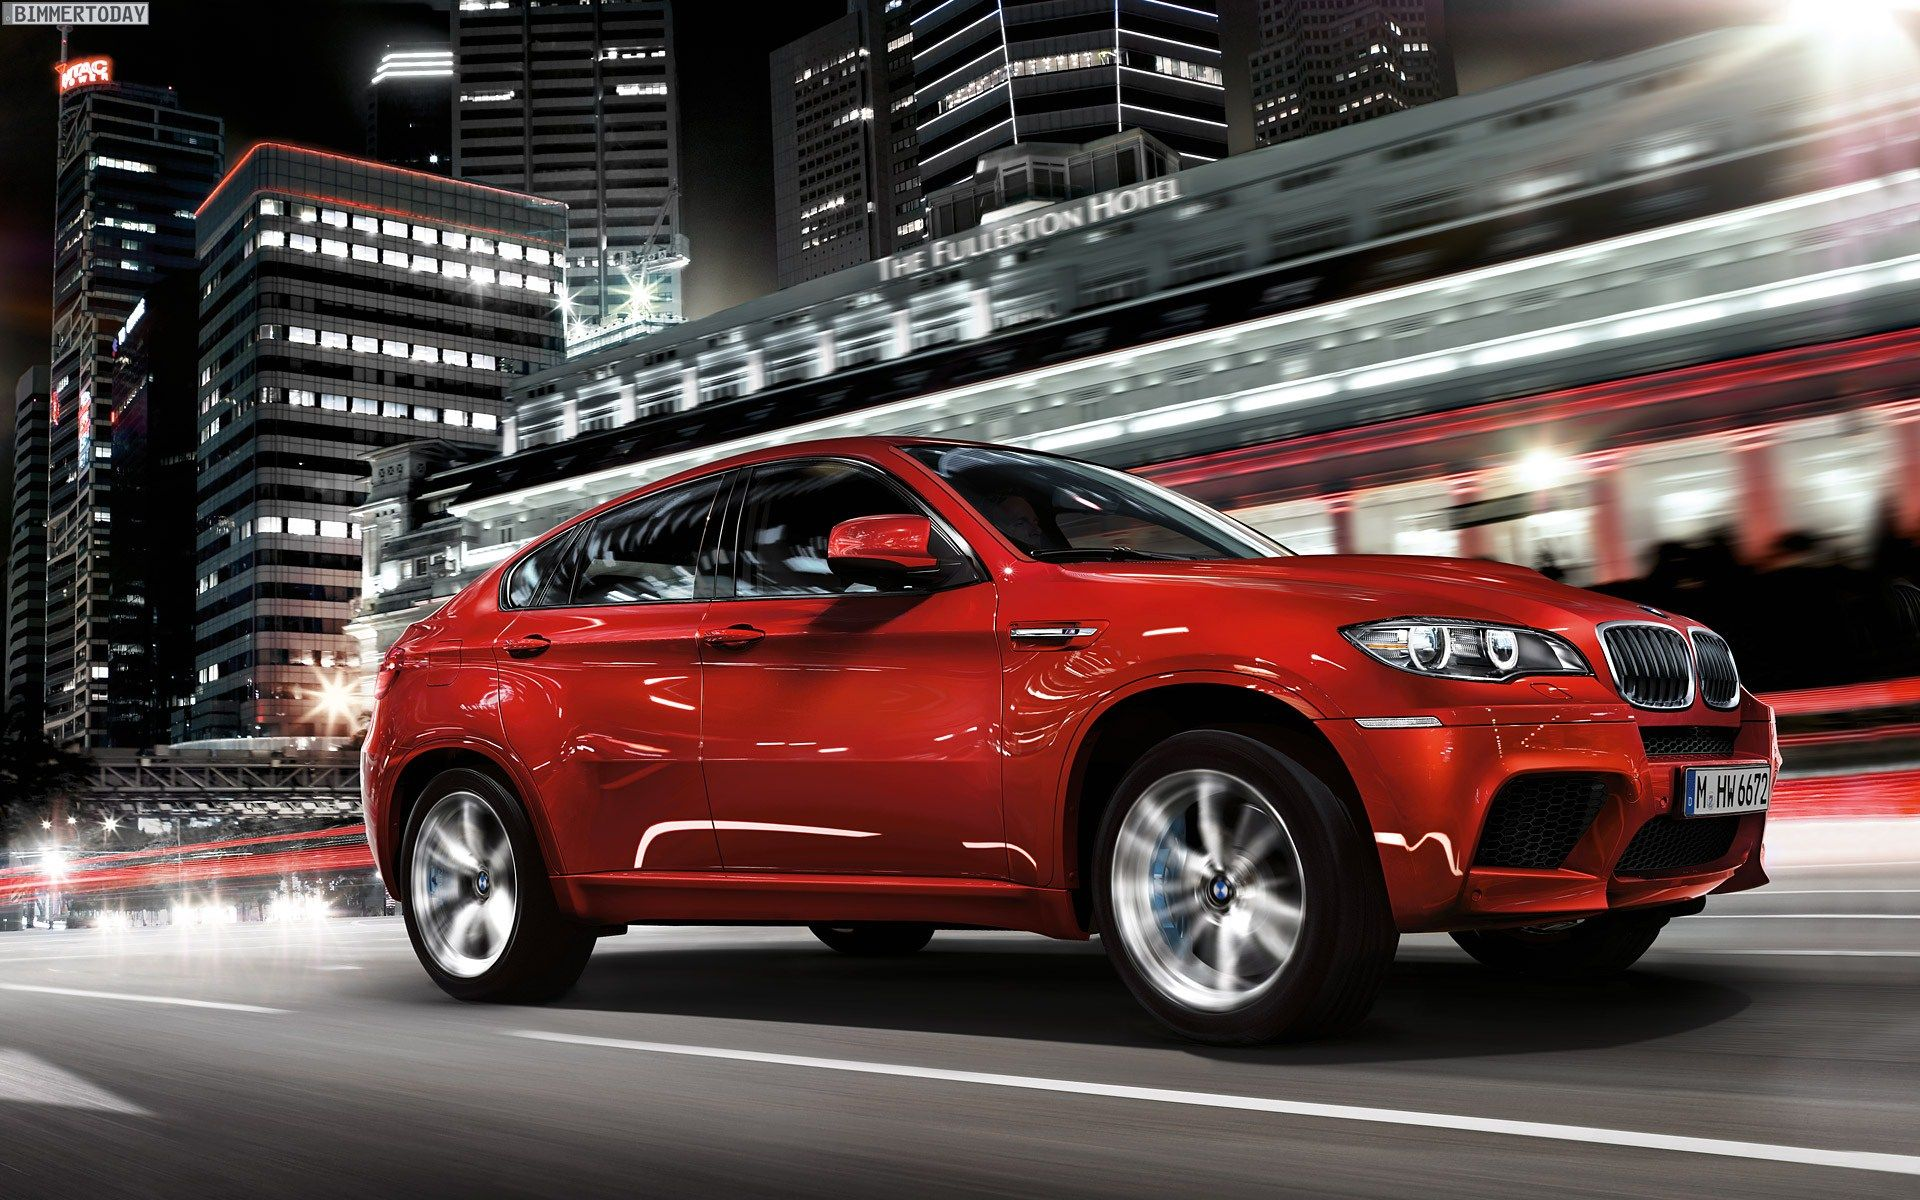 bmw x6 side view car pictures car wallpapers information